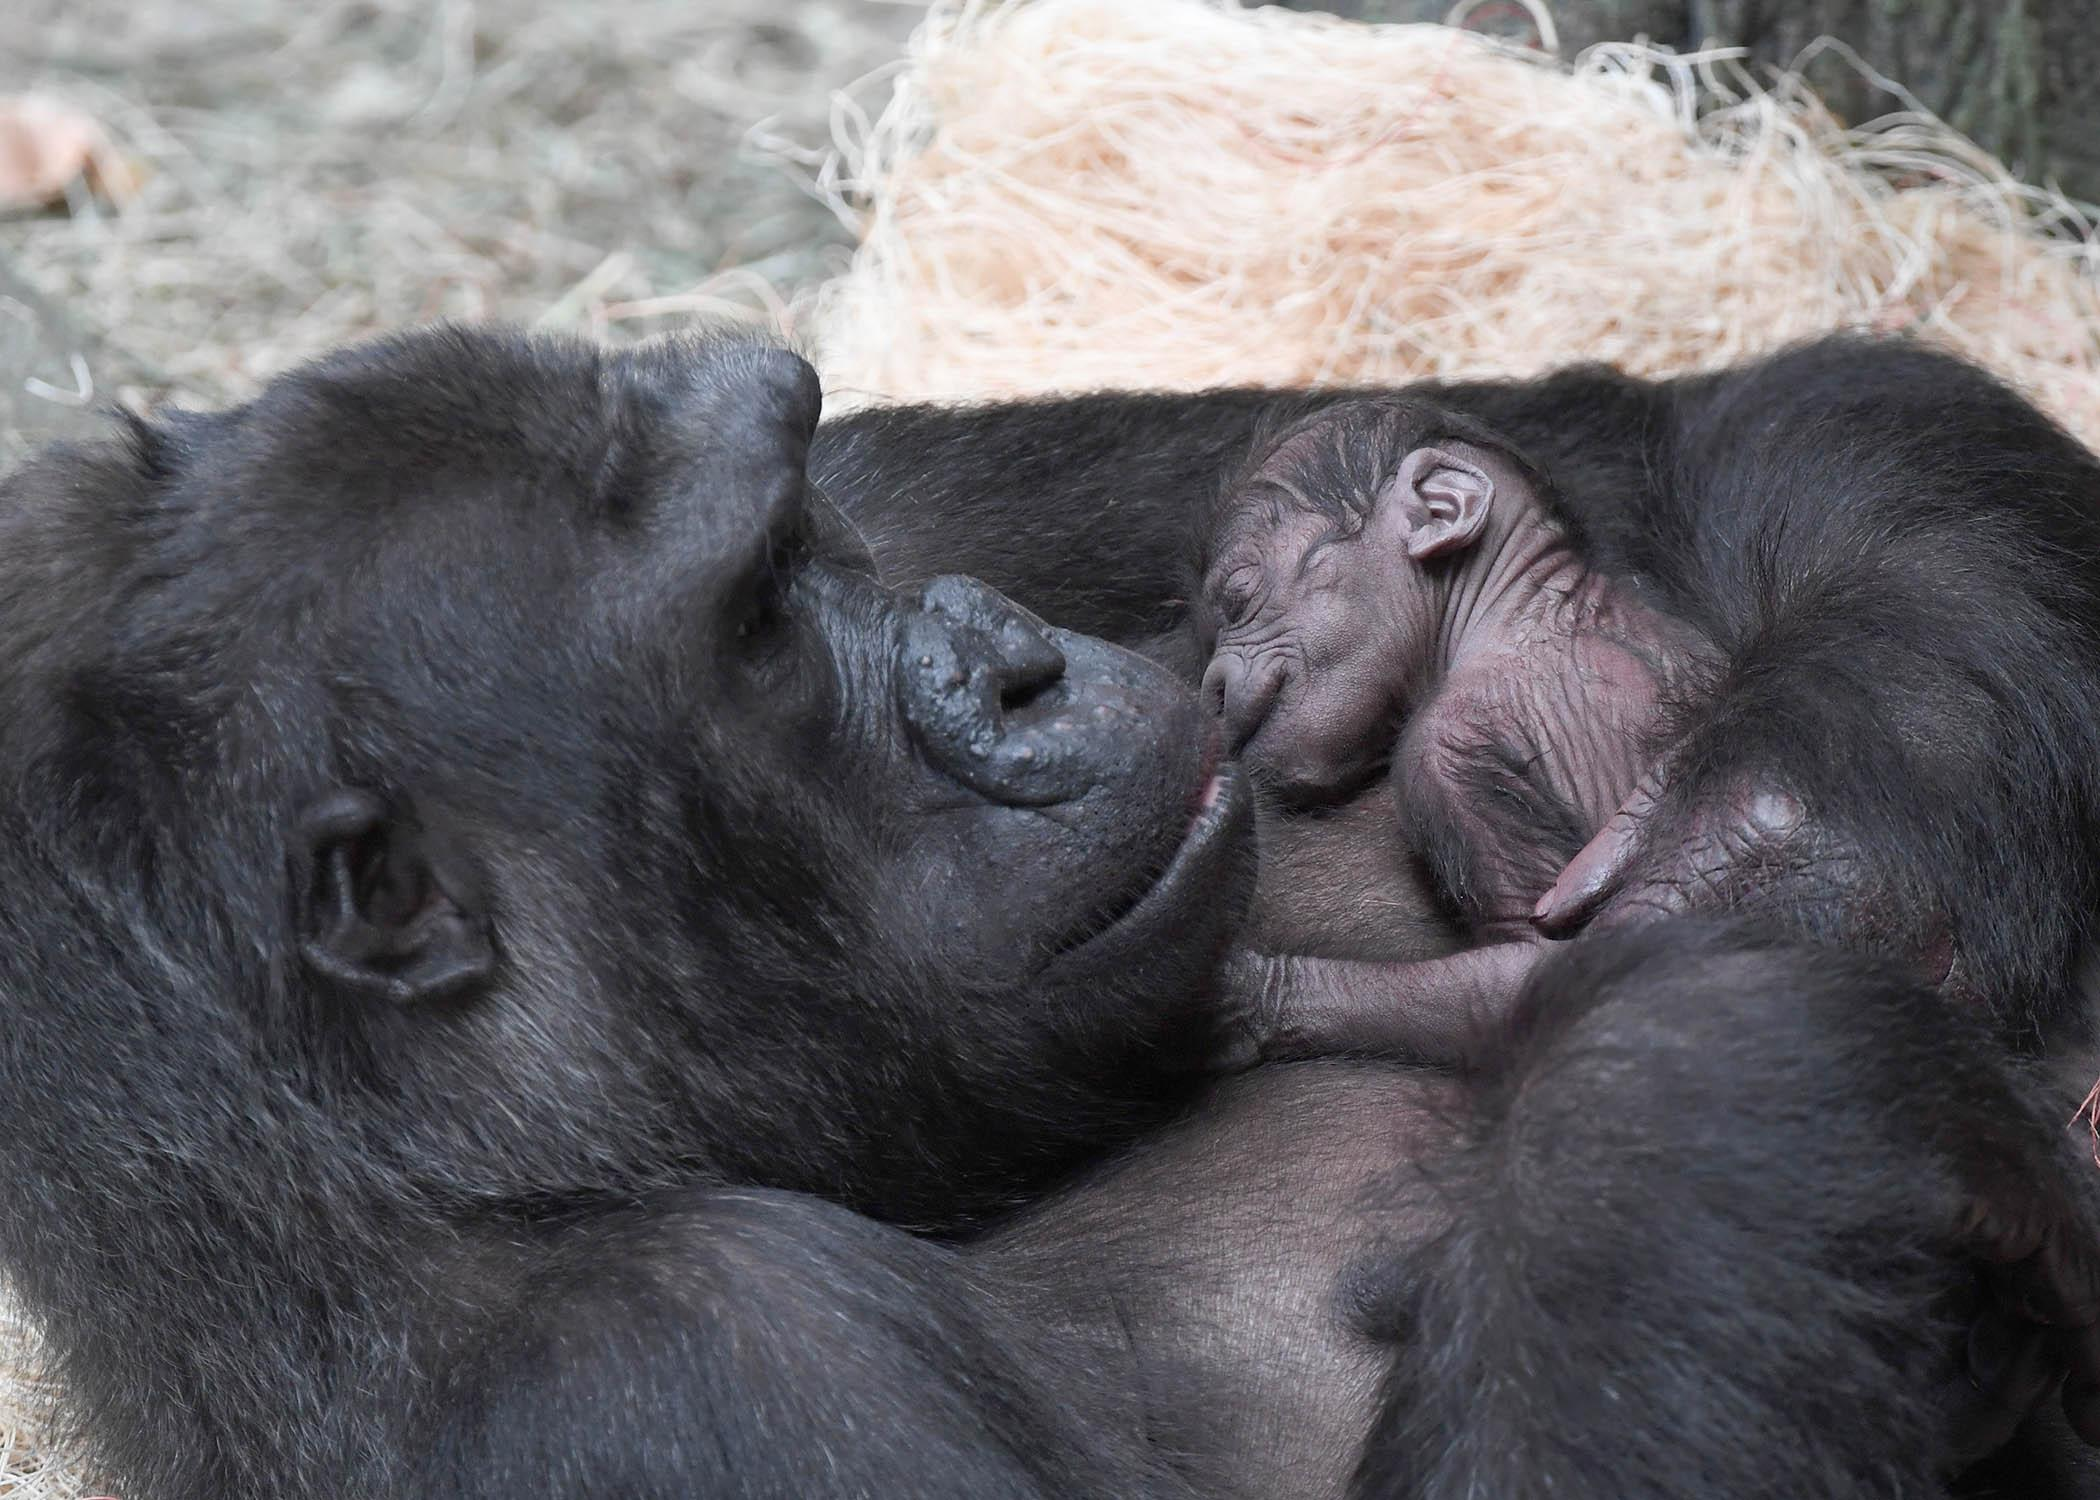 Koola, a 23-year-old western lowland gorilla at Brookfield Zoo, gave birth to her third offspring June 1. (Courtesy Chicago Zoological Society)